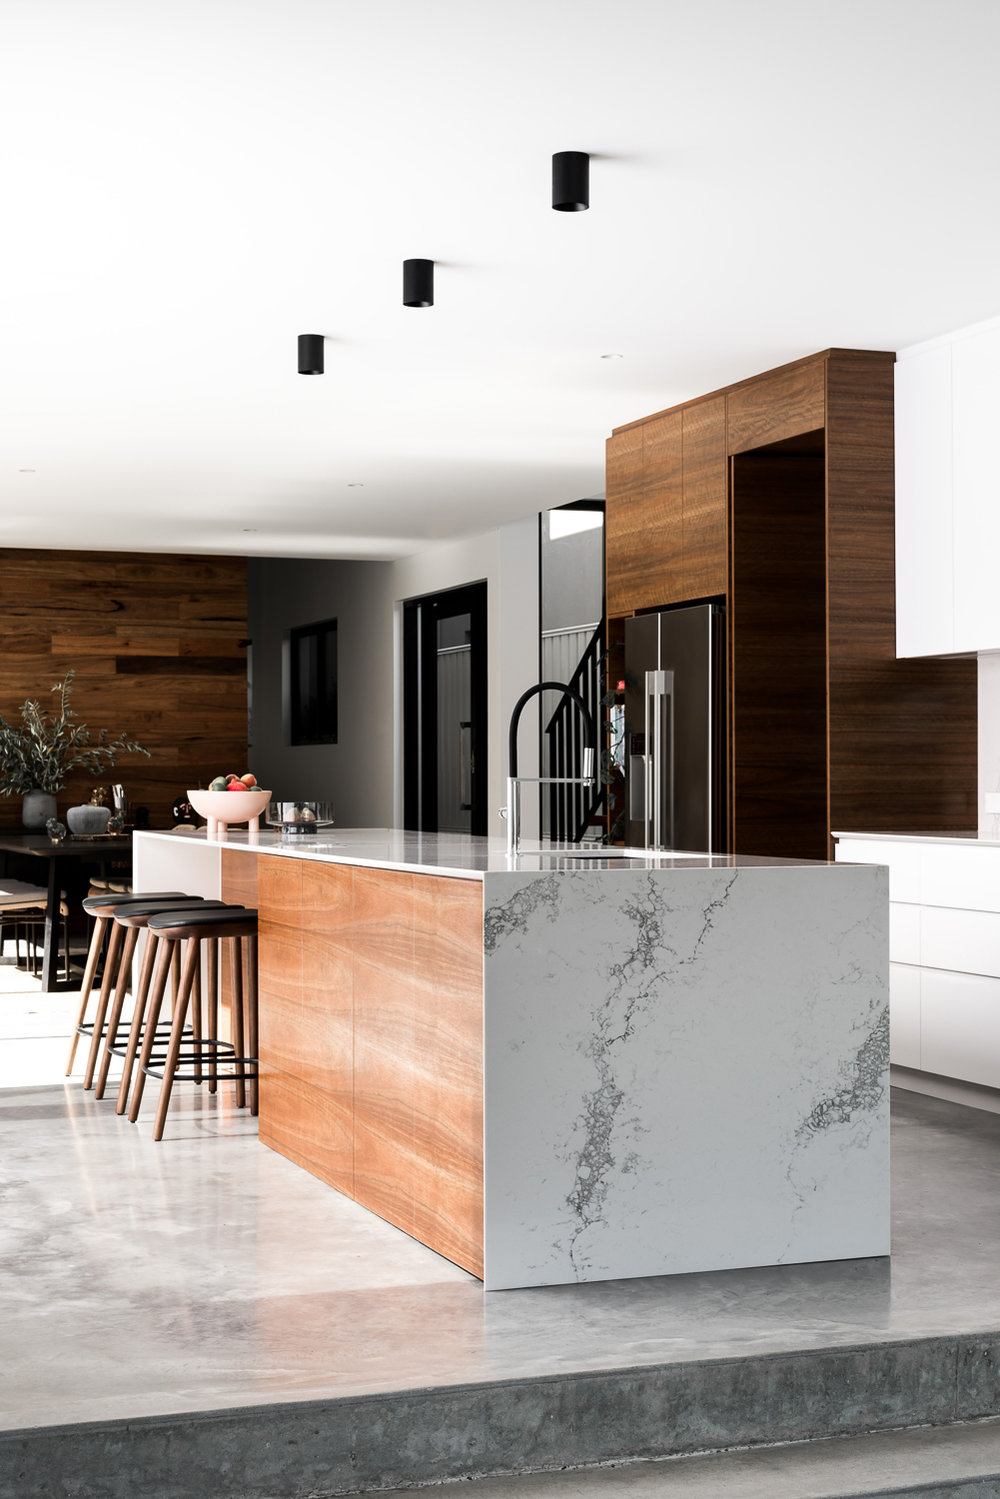 Como Residence by Studio Atelier - Contemporary kitchen design.jpg